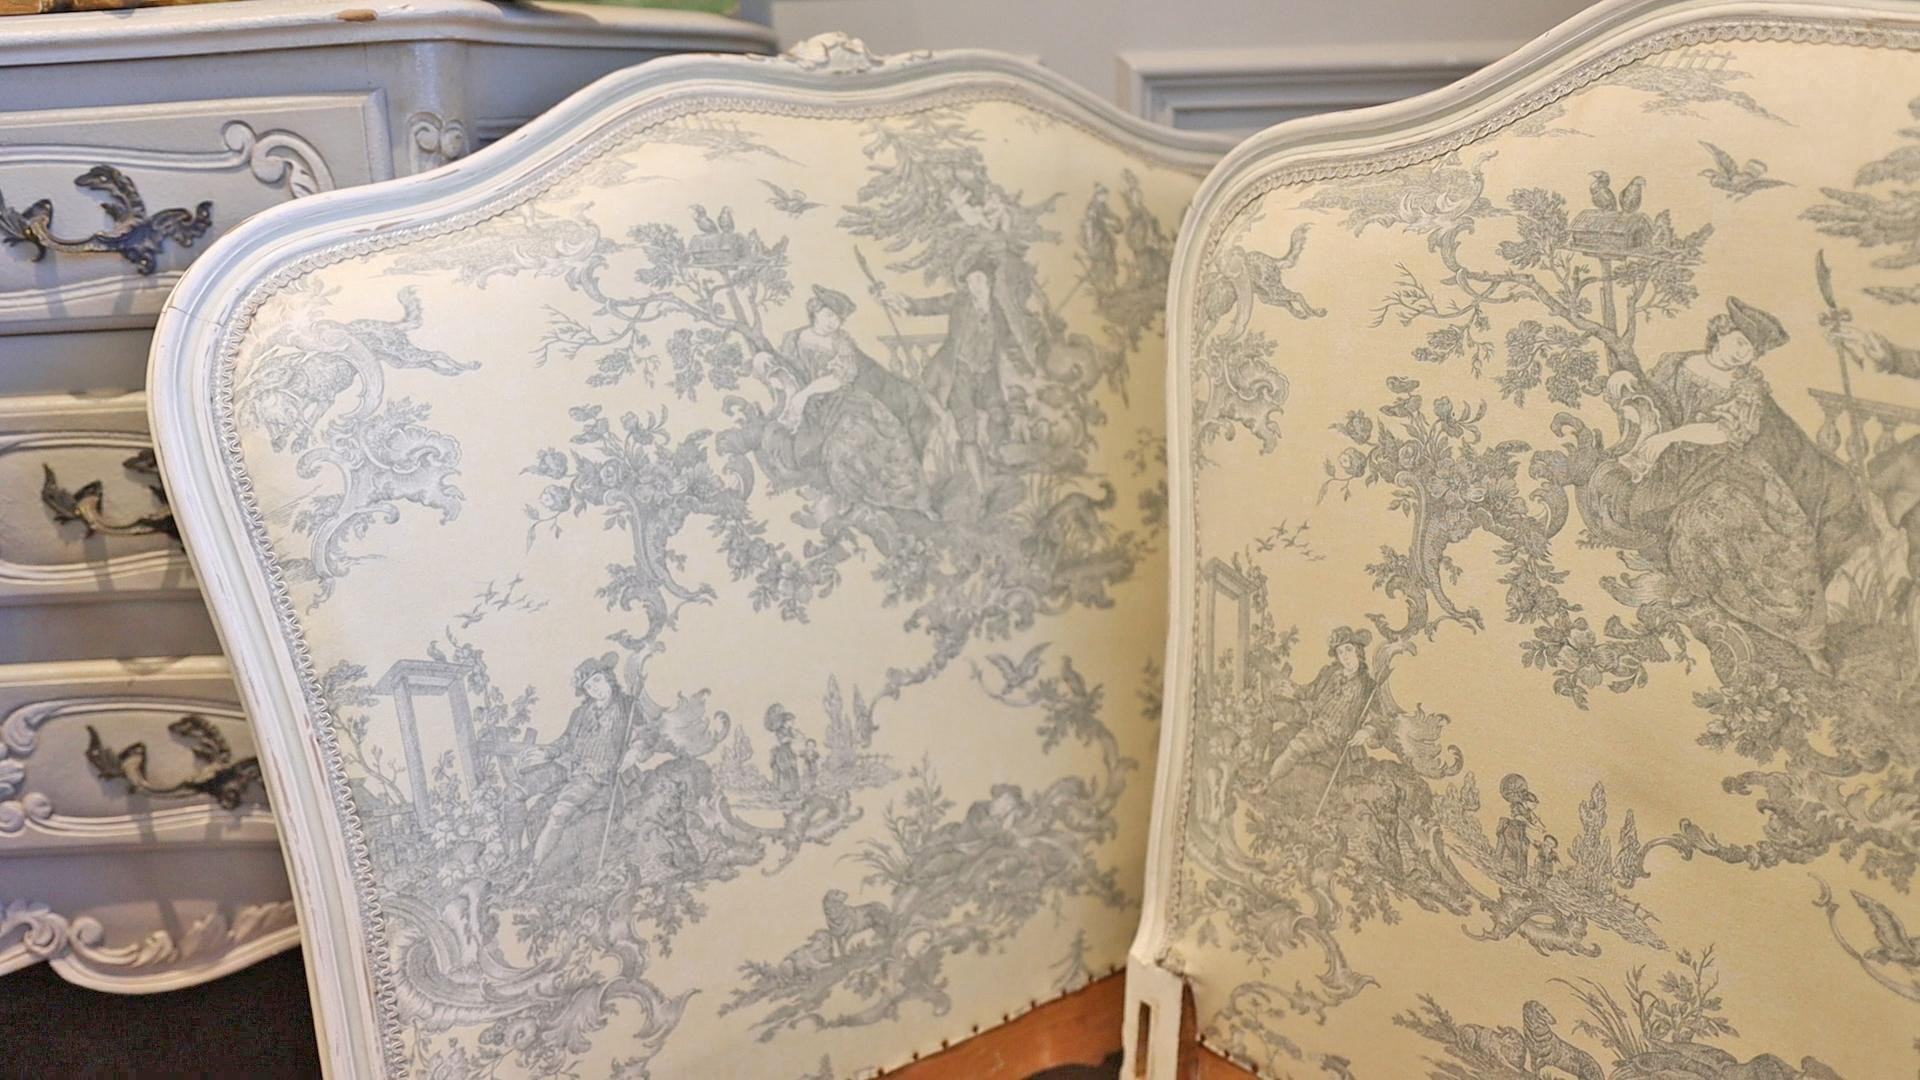 French country-style daybed with toile fabric in a cool gray and soft yellow color was the perfect antique decor find from Round Top shopping.